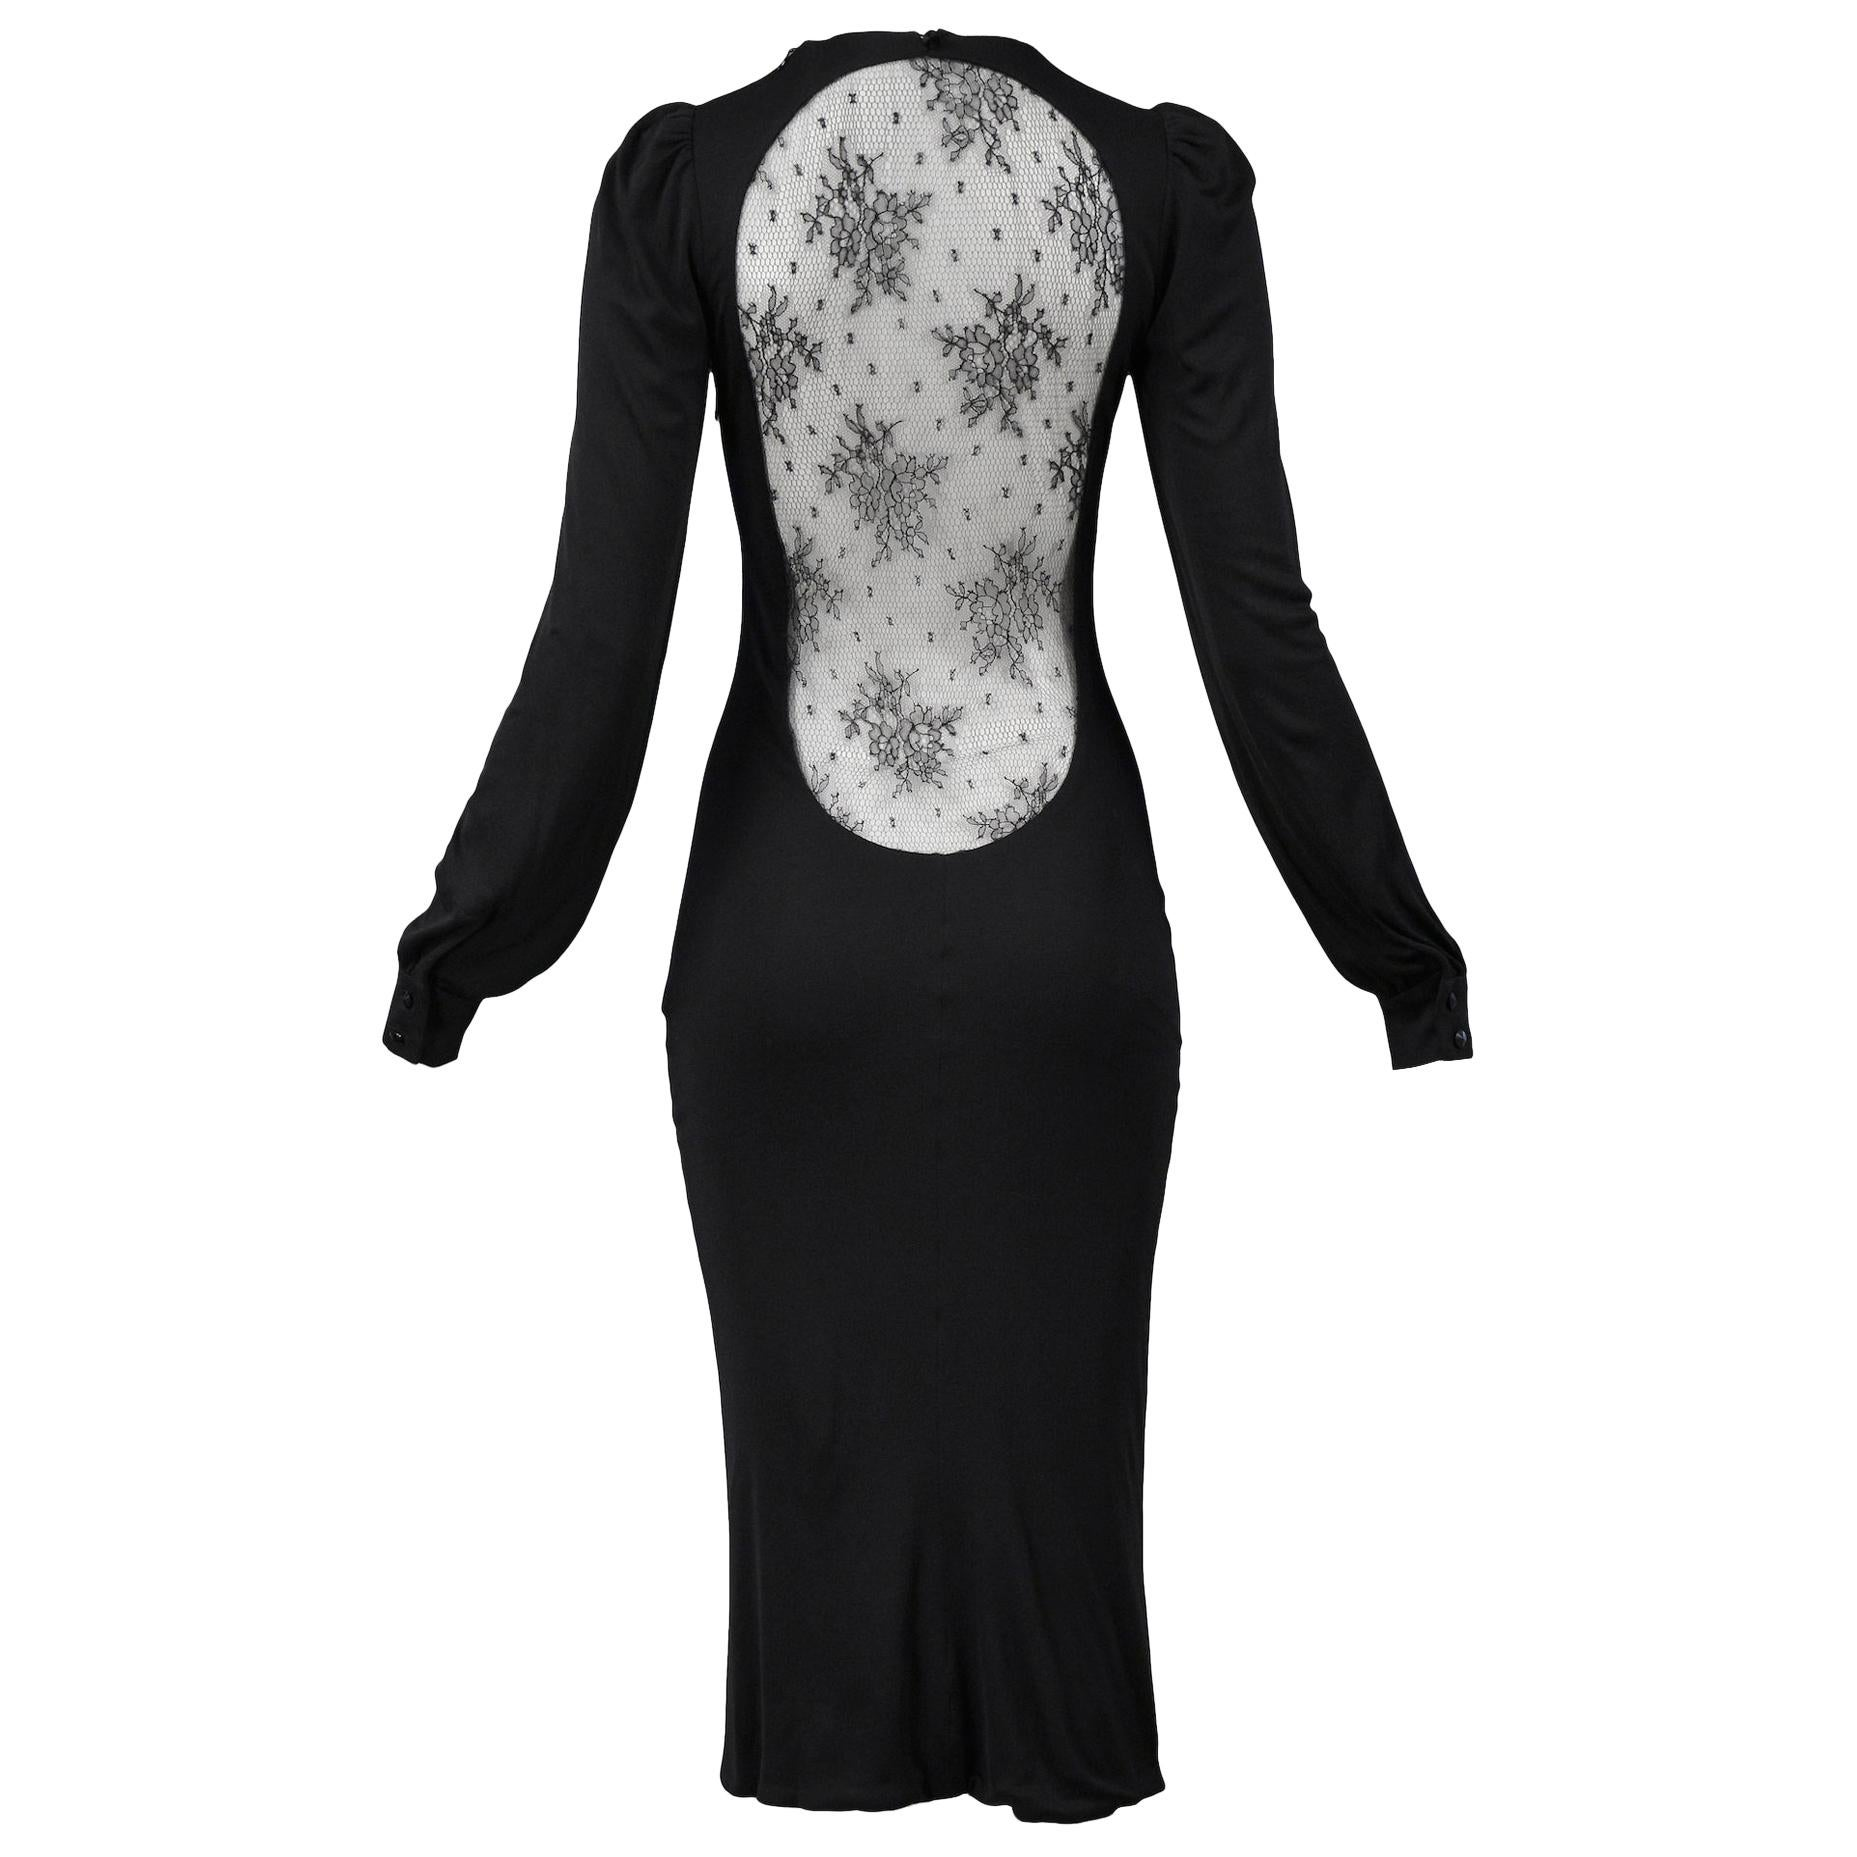 "Vintage Alexander McQueen Black Lace ""Hitchcock"" Dress 2005"